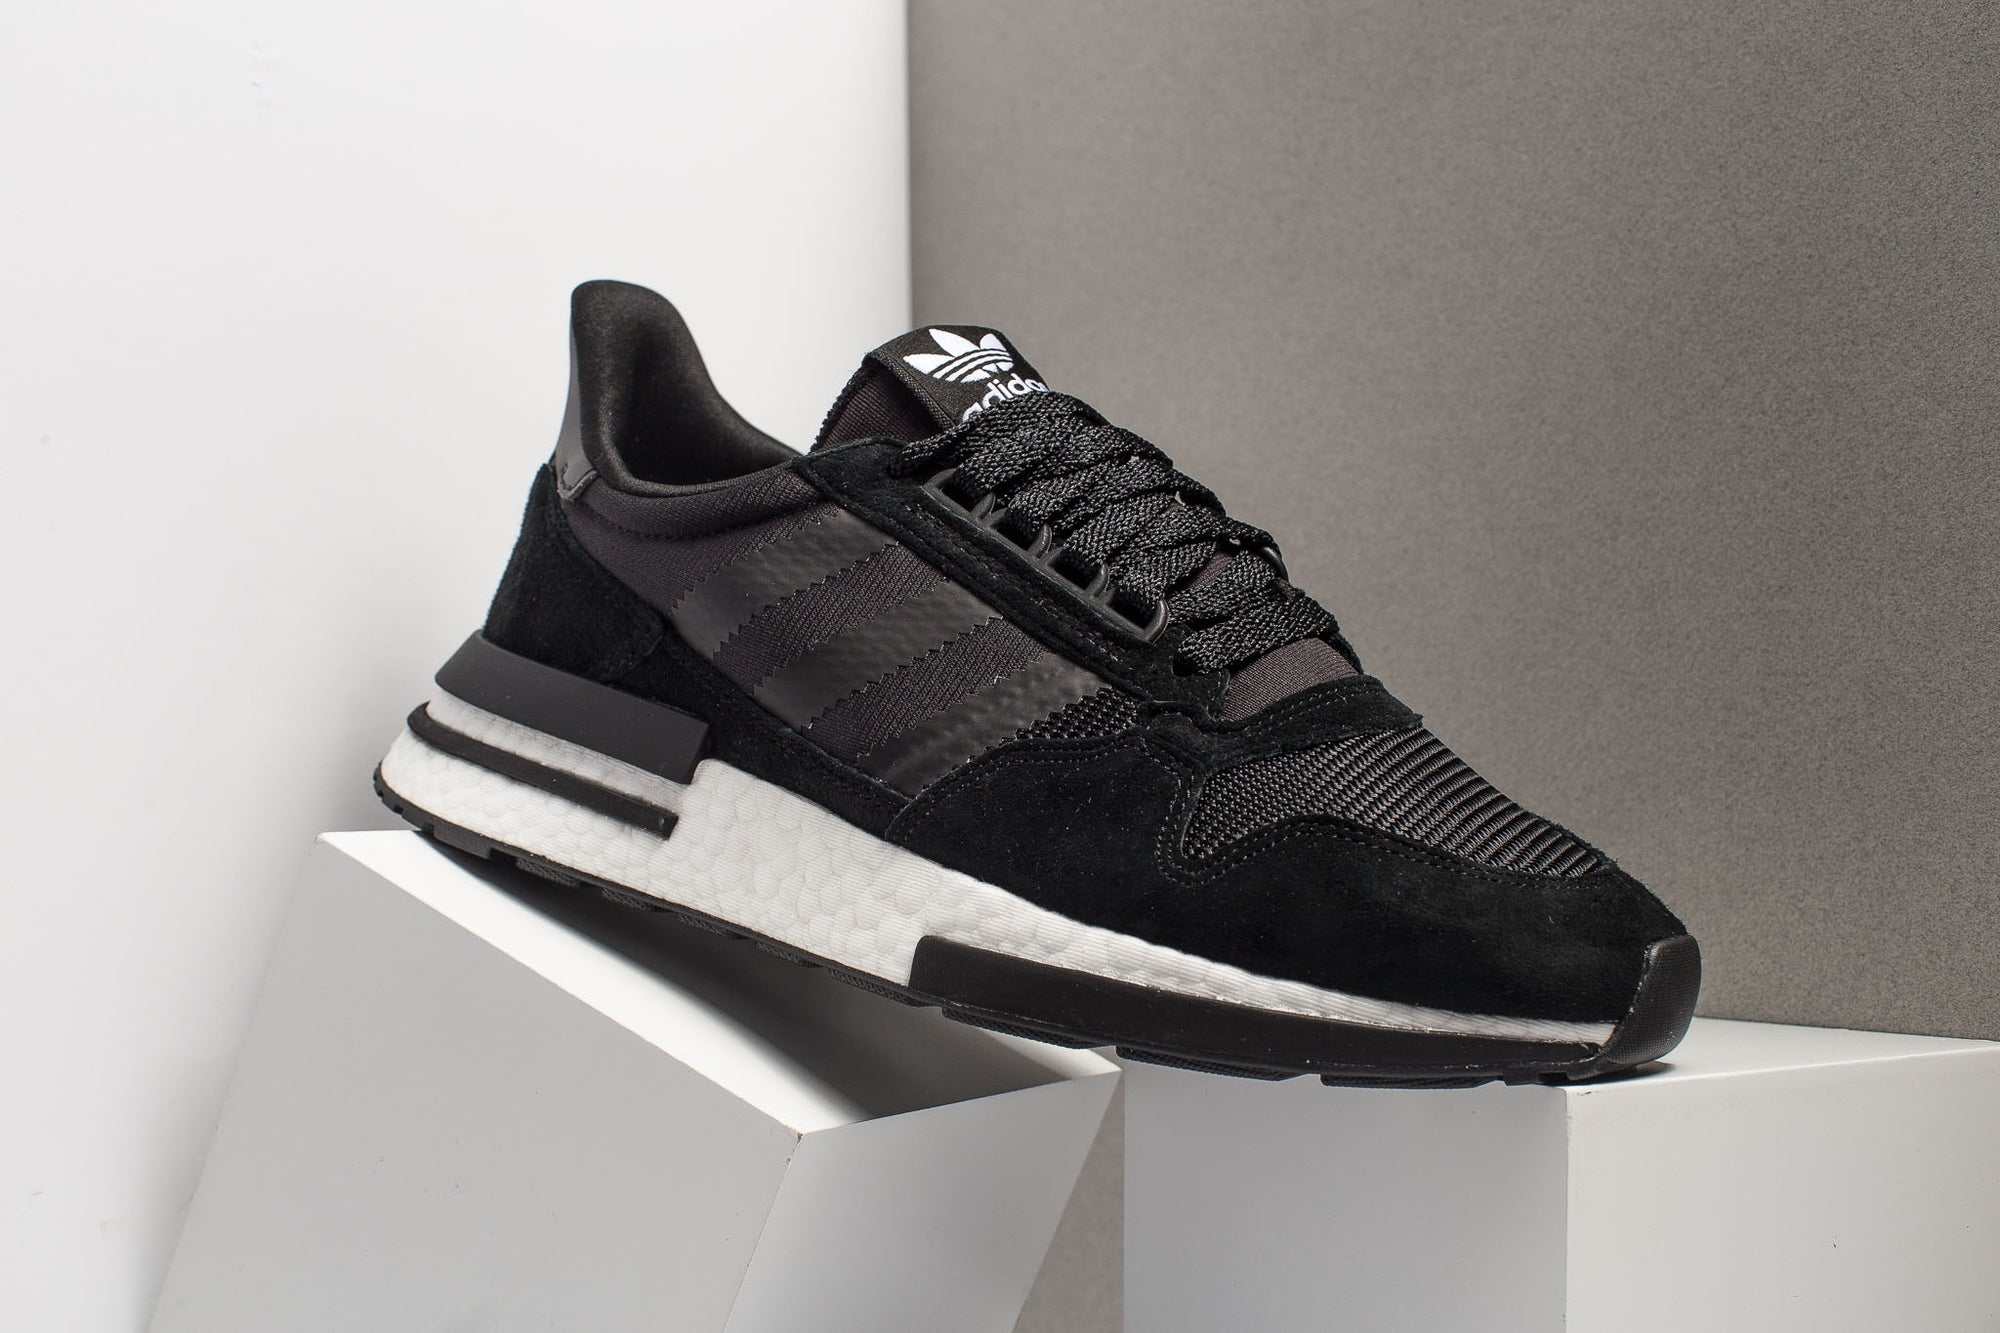 quality design 5c2a5 23991 ADIDAS ZX 500 RM - Oneness Boutique